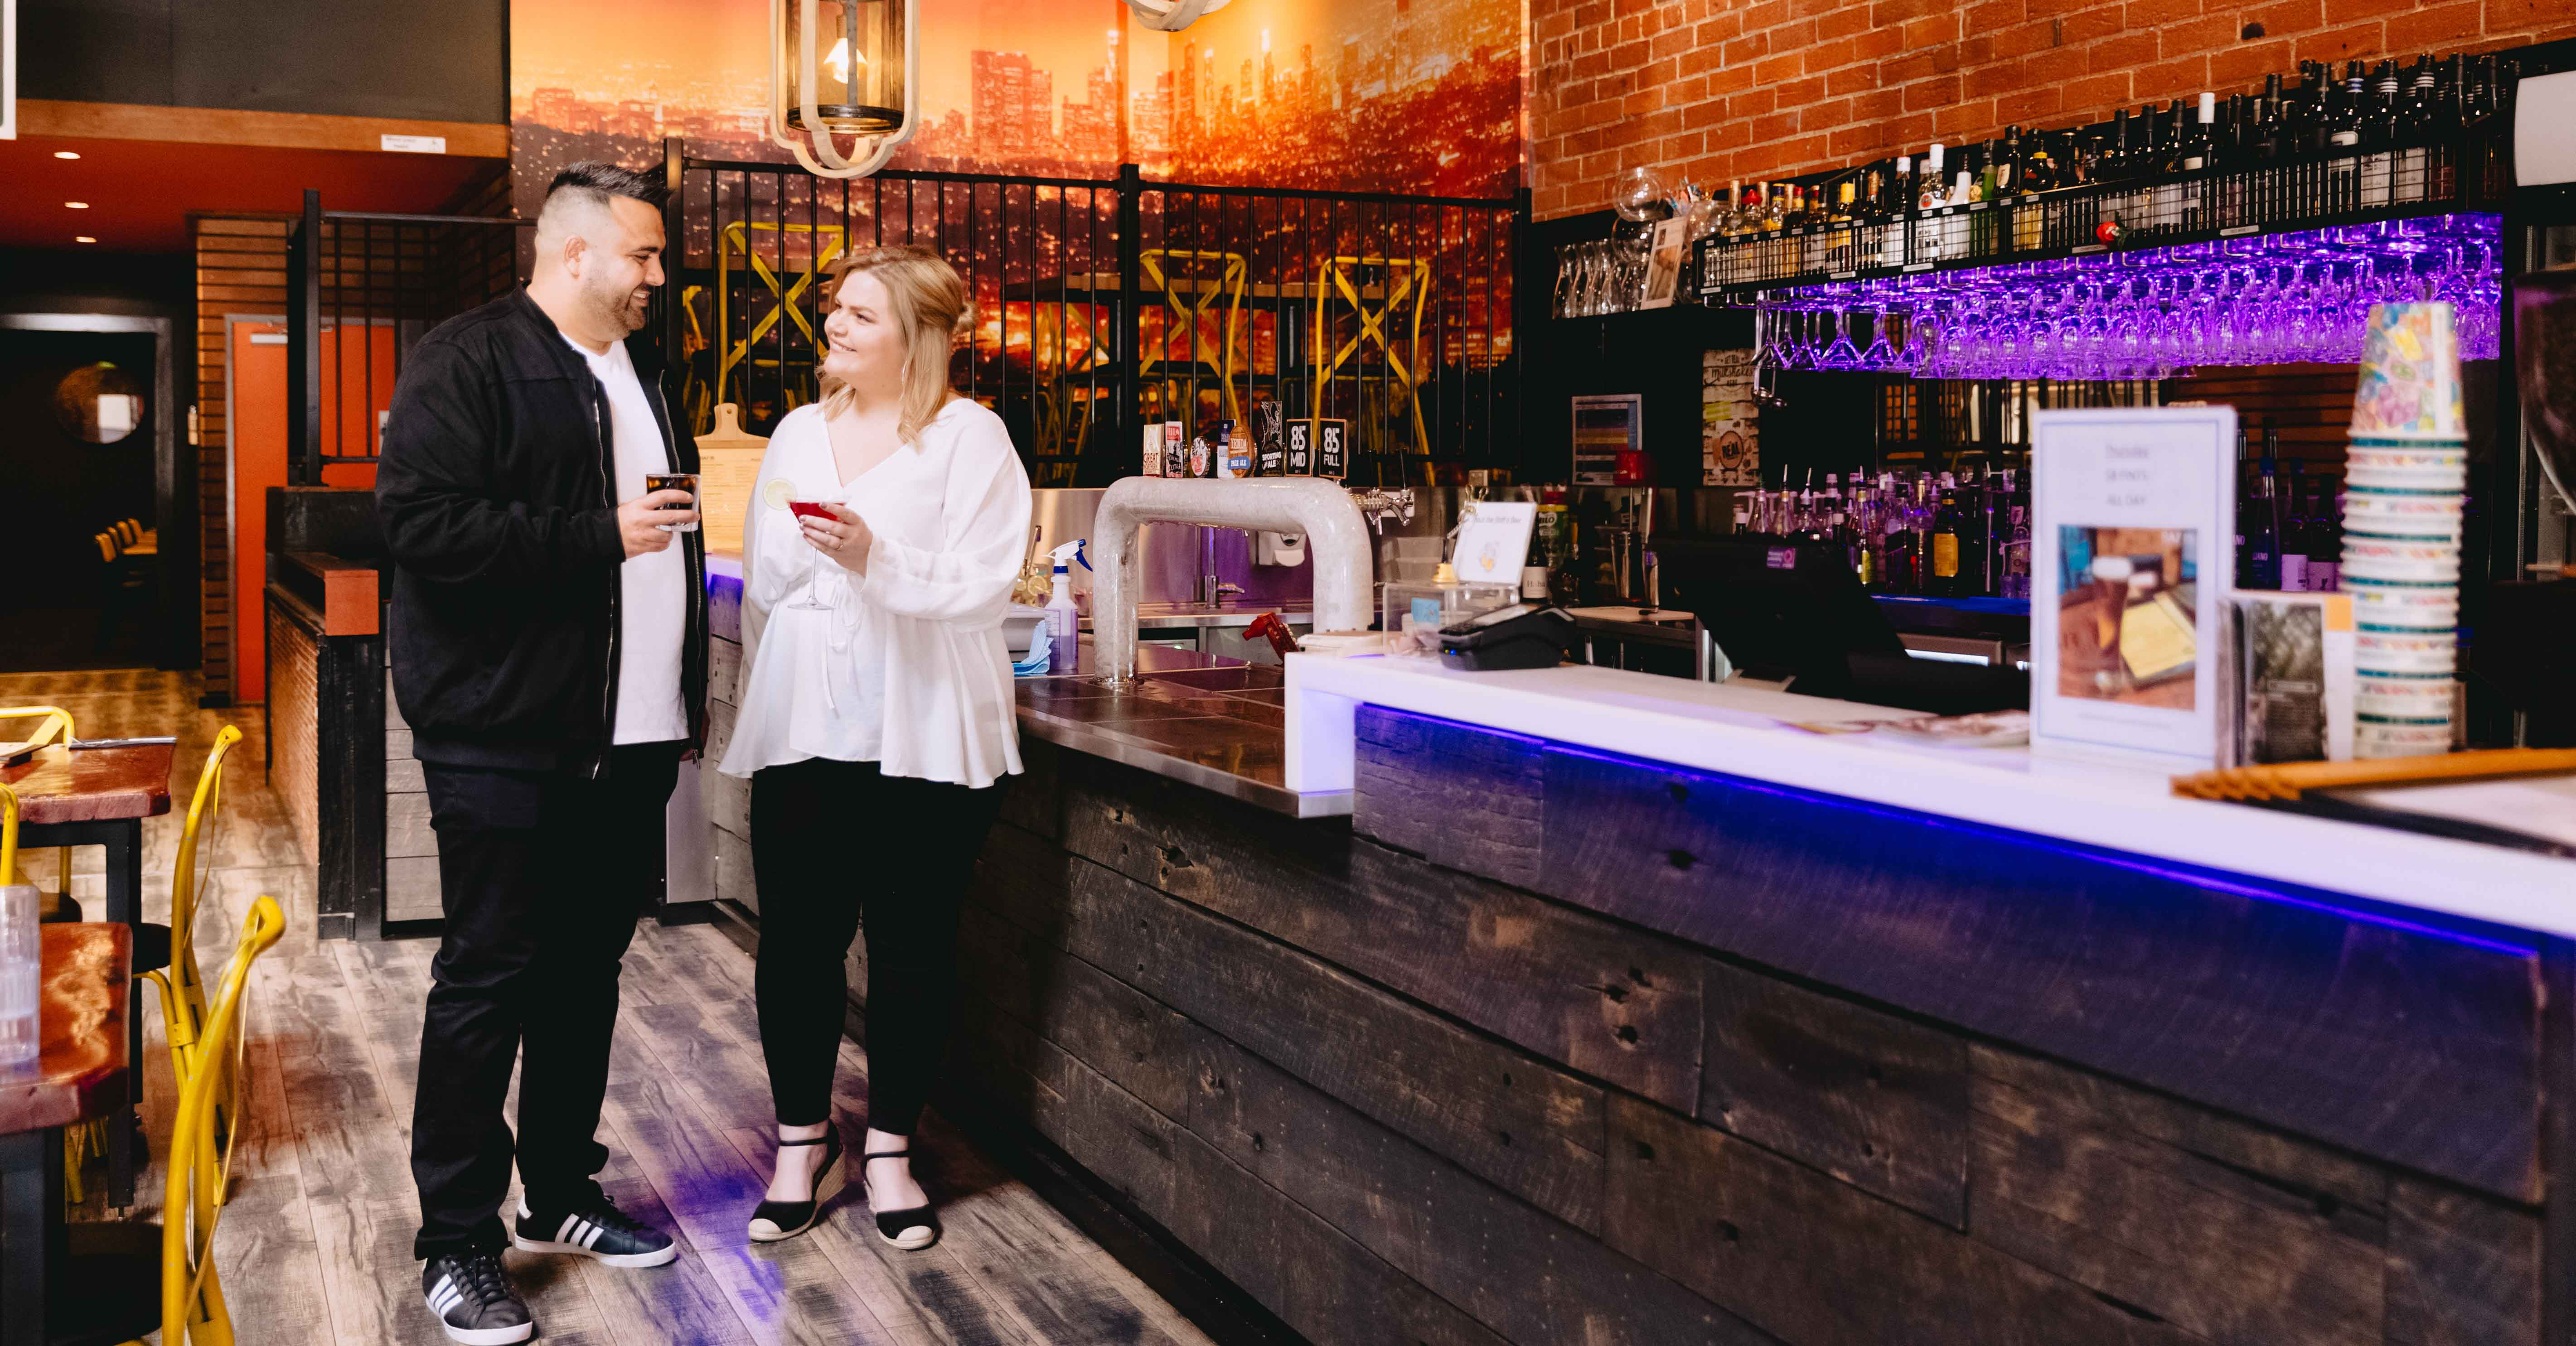 Male and female standing at a bar with drinks